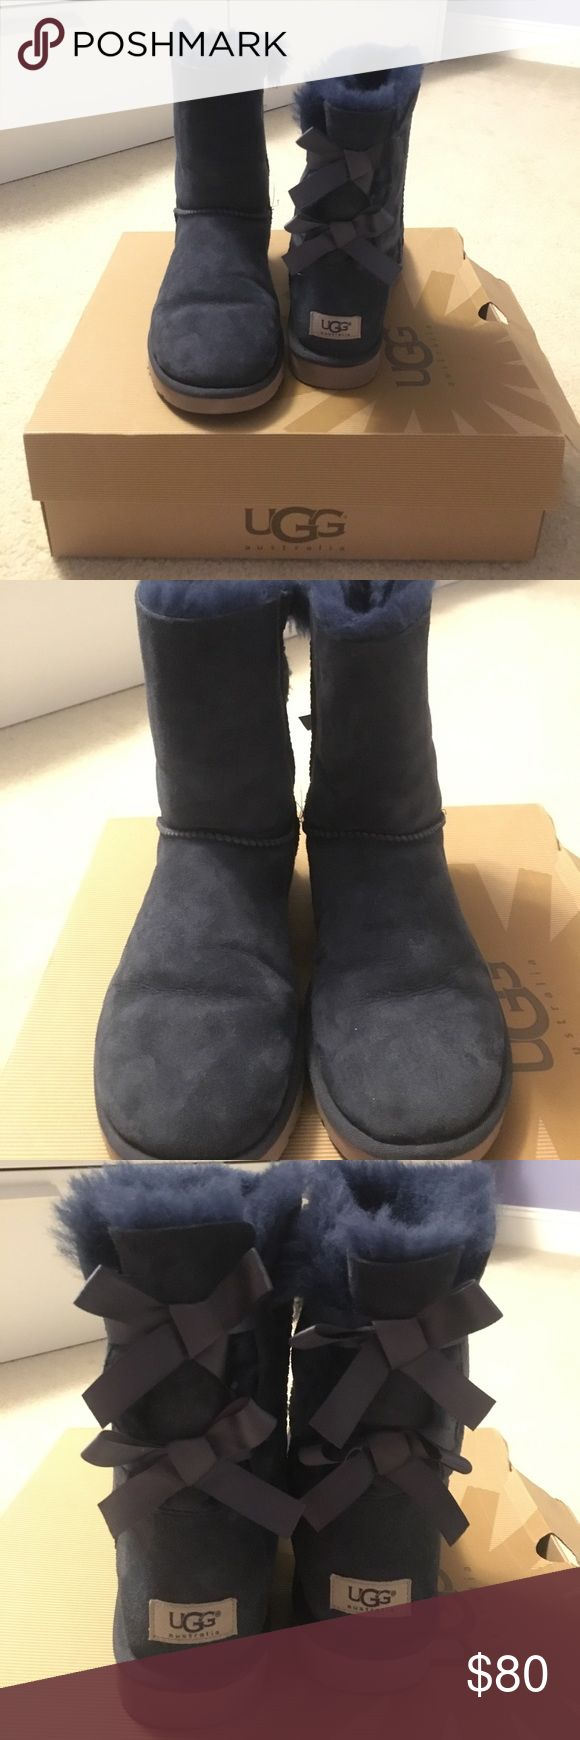 Authentic Blue UGG Bailey Bow Boots Blue Ugg Bailey Bow boots. Pre-loved but in excellent condition! Super cute shoe!                                                   📦SAME OR NEXT DAY SHIPPING                                 ❌No trades, thank you!                                              ✅Make me an offer!                                                      ❓Ask questions BEFORE purchasing! UGG Shoes